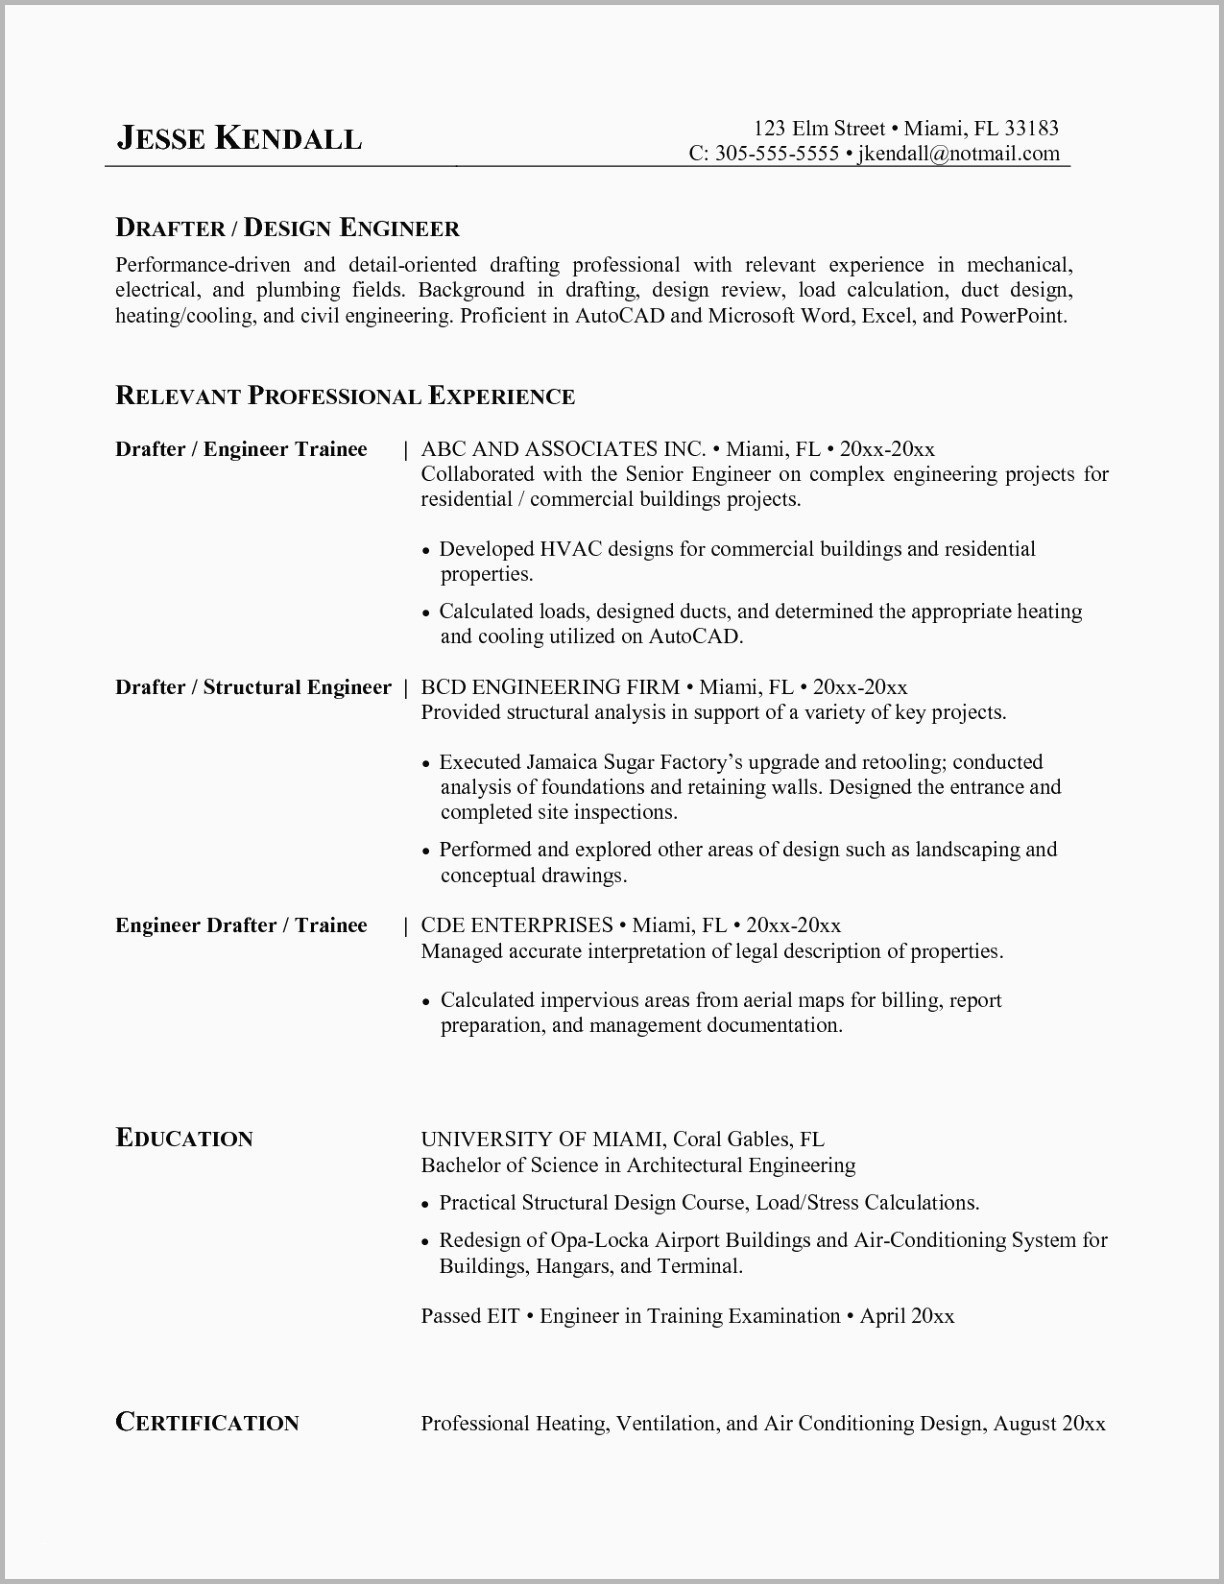 insurance resume template example-Gallery Text plexity Analysis Worksheet Insurance Resume Template – Insurance Resumes Example Bsw Resume 0d 5-e